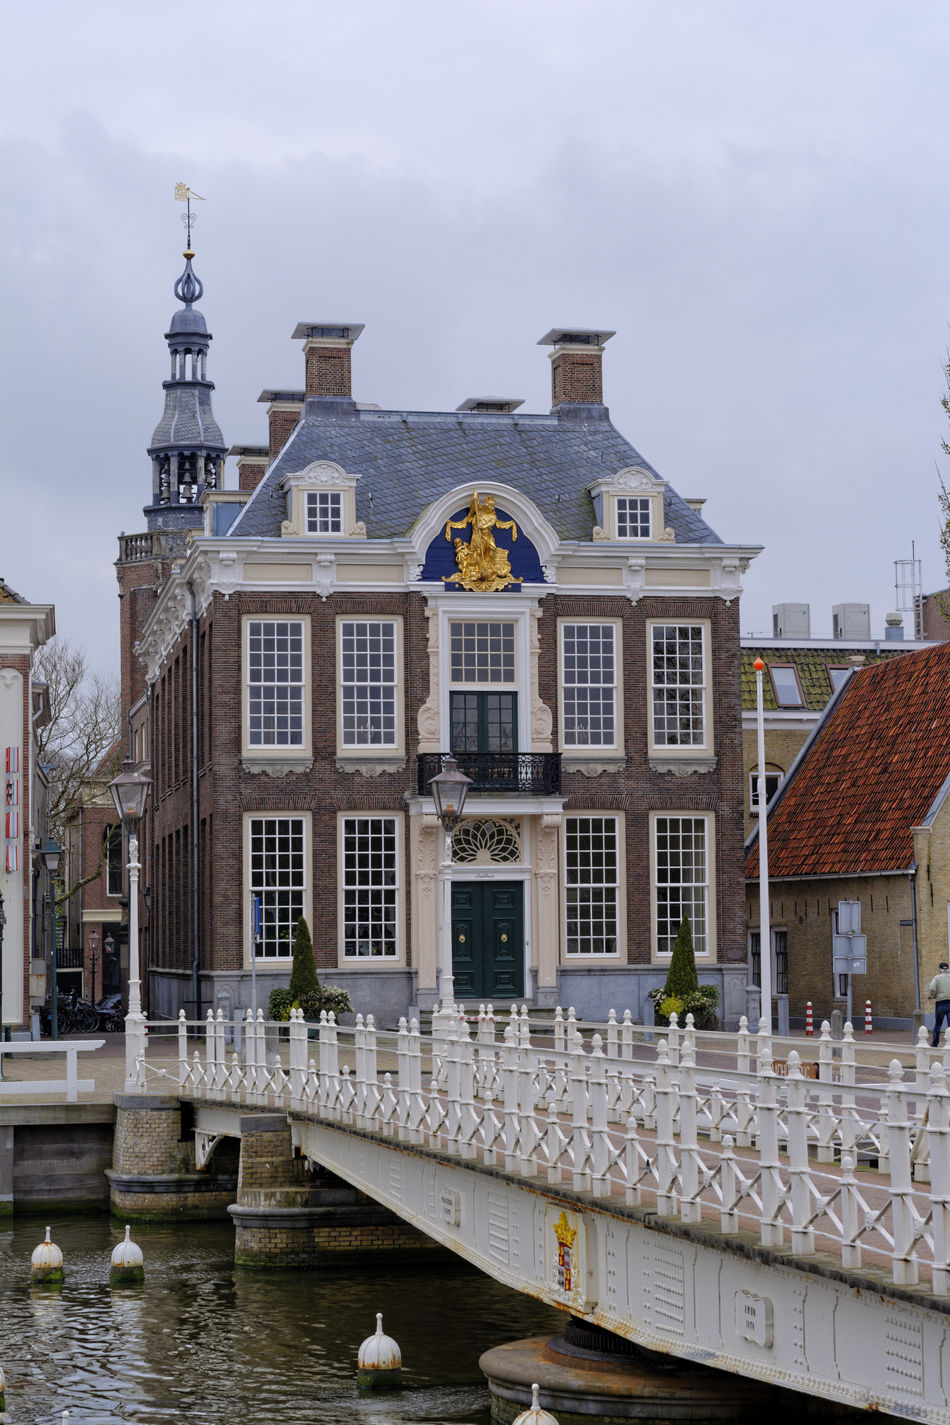 town hall in Harlingen, Netherlands Architecture Bridge Building Exterior Built Structure Church City City Hall Clouds Clouds And Sky Day Flag History Netherlands Netherlands ❤ No People Noorderhaven Outdoors Politics And Government Sculpture Sky Stadhuis Statue Town Hall Travel Destinations Water